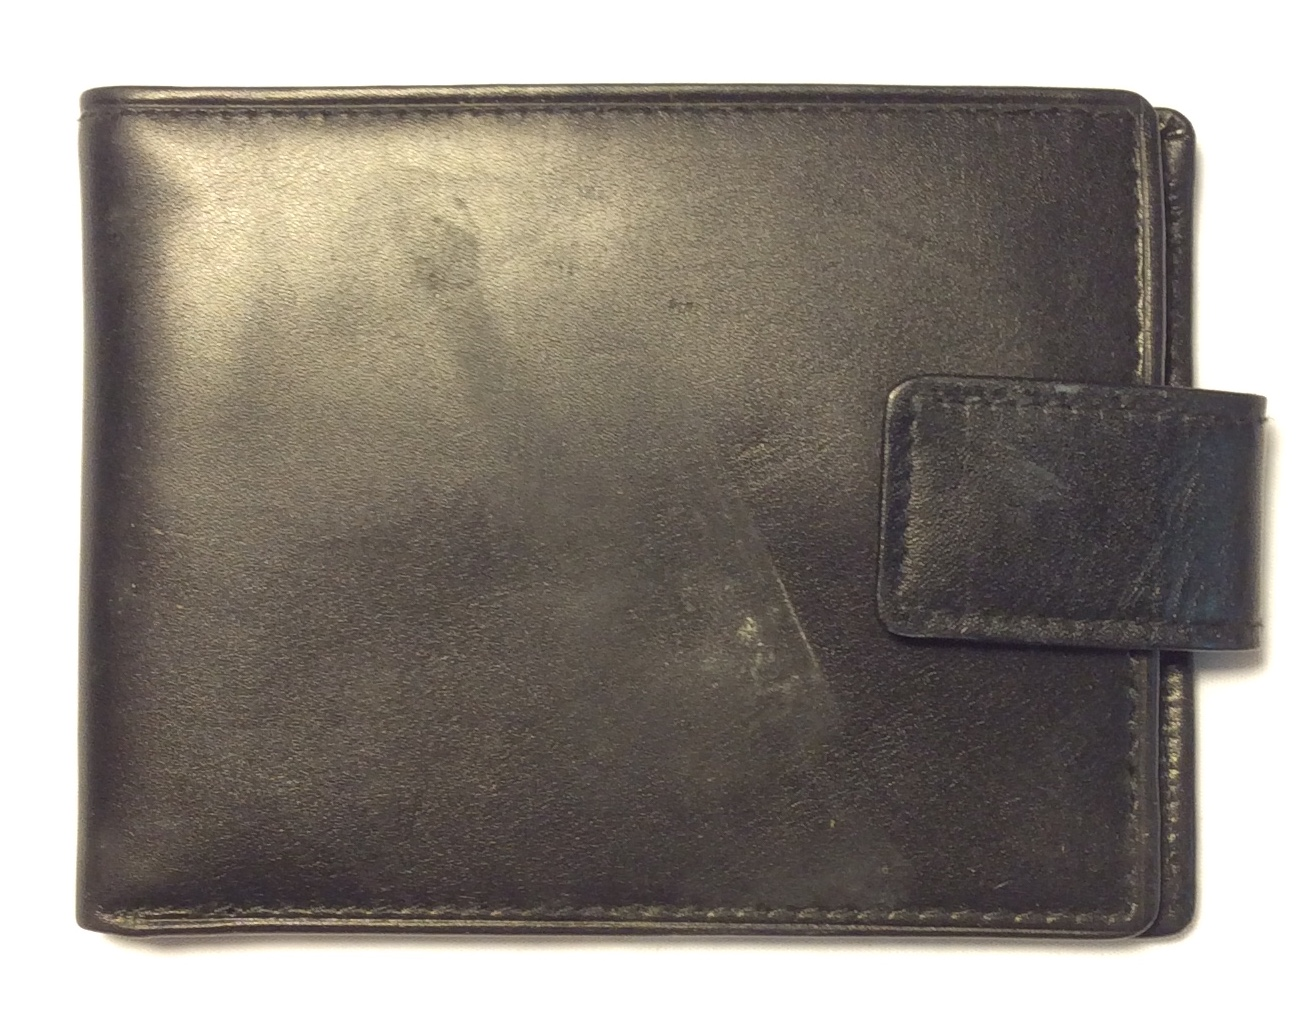 Black leather wallet with leather